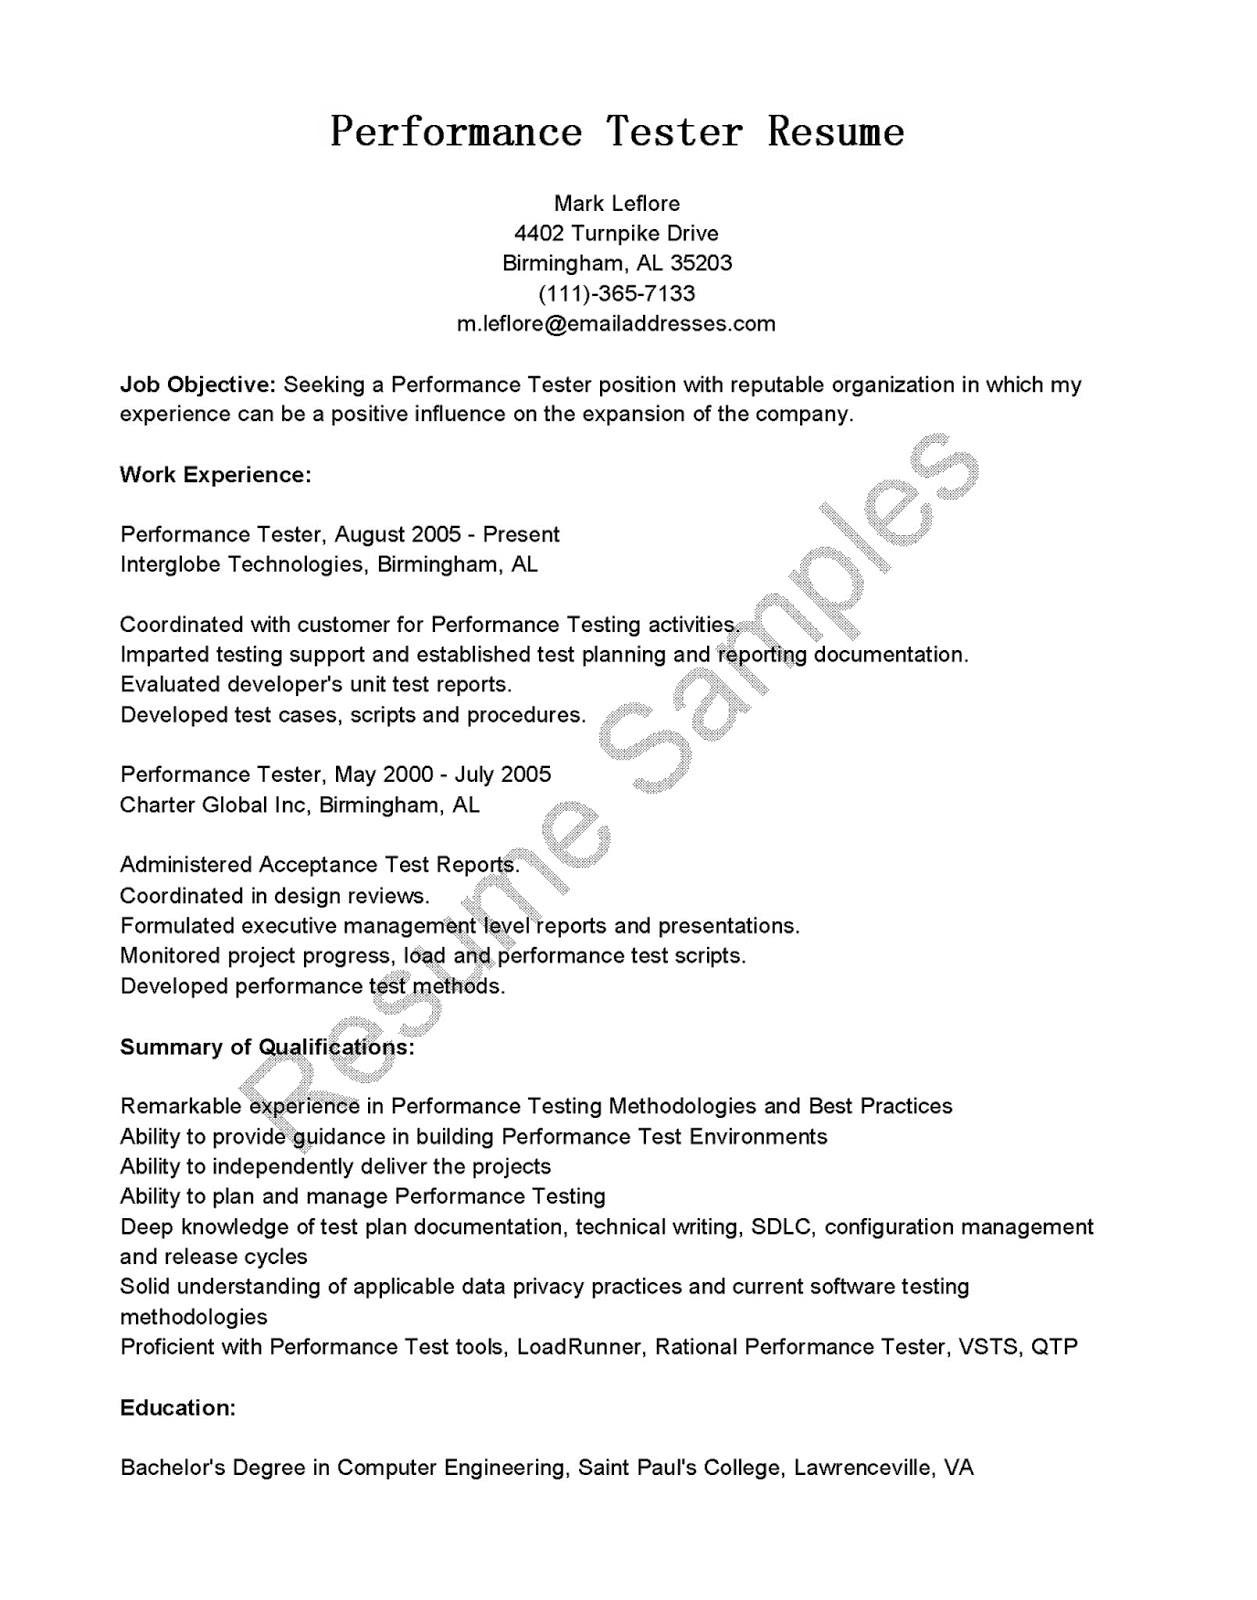 software testing resume samples for 1 year experience unique resume format for software tester awesome software testing resume